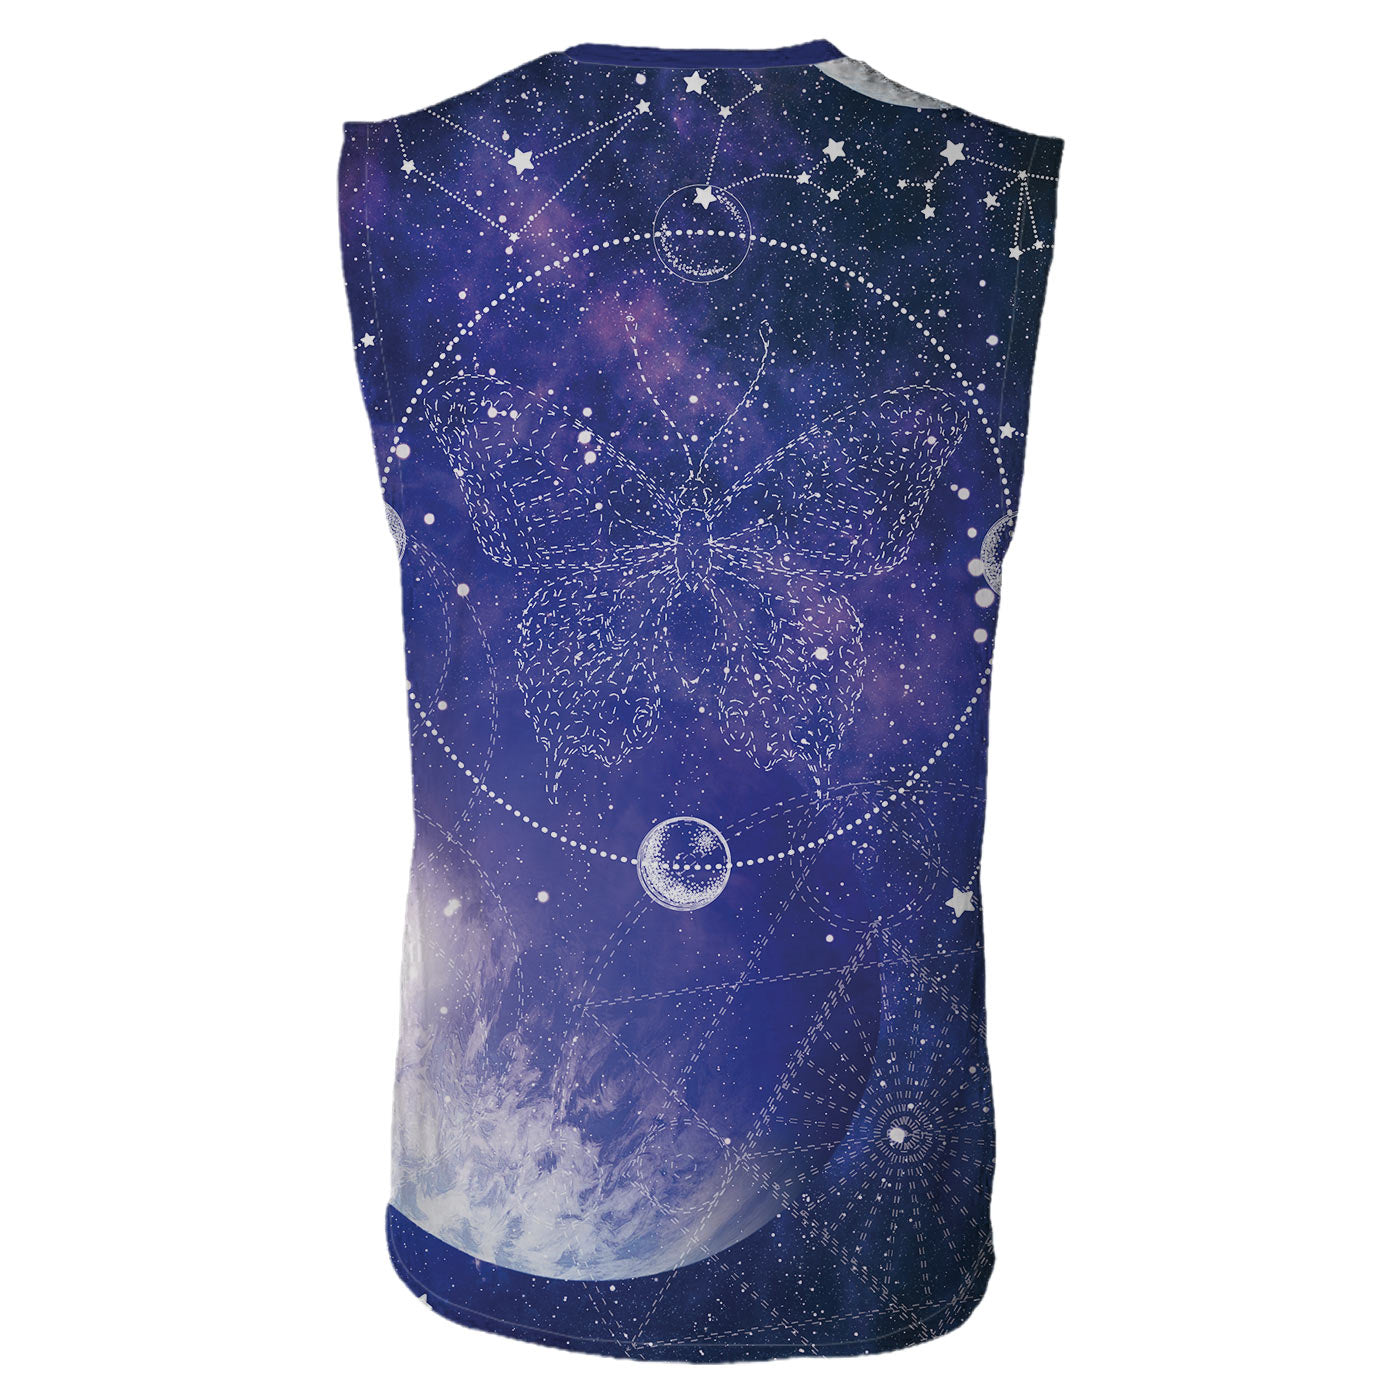 Mariposa Stars Sleeveless T-Shirt